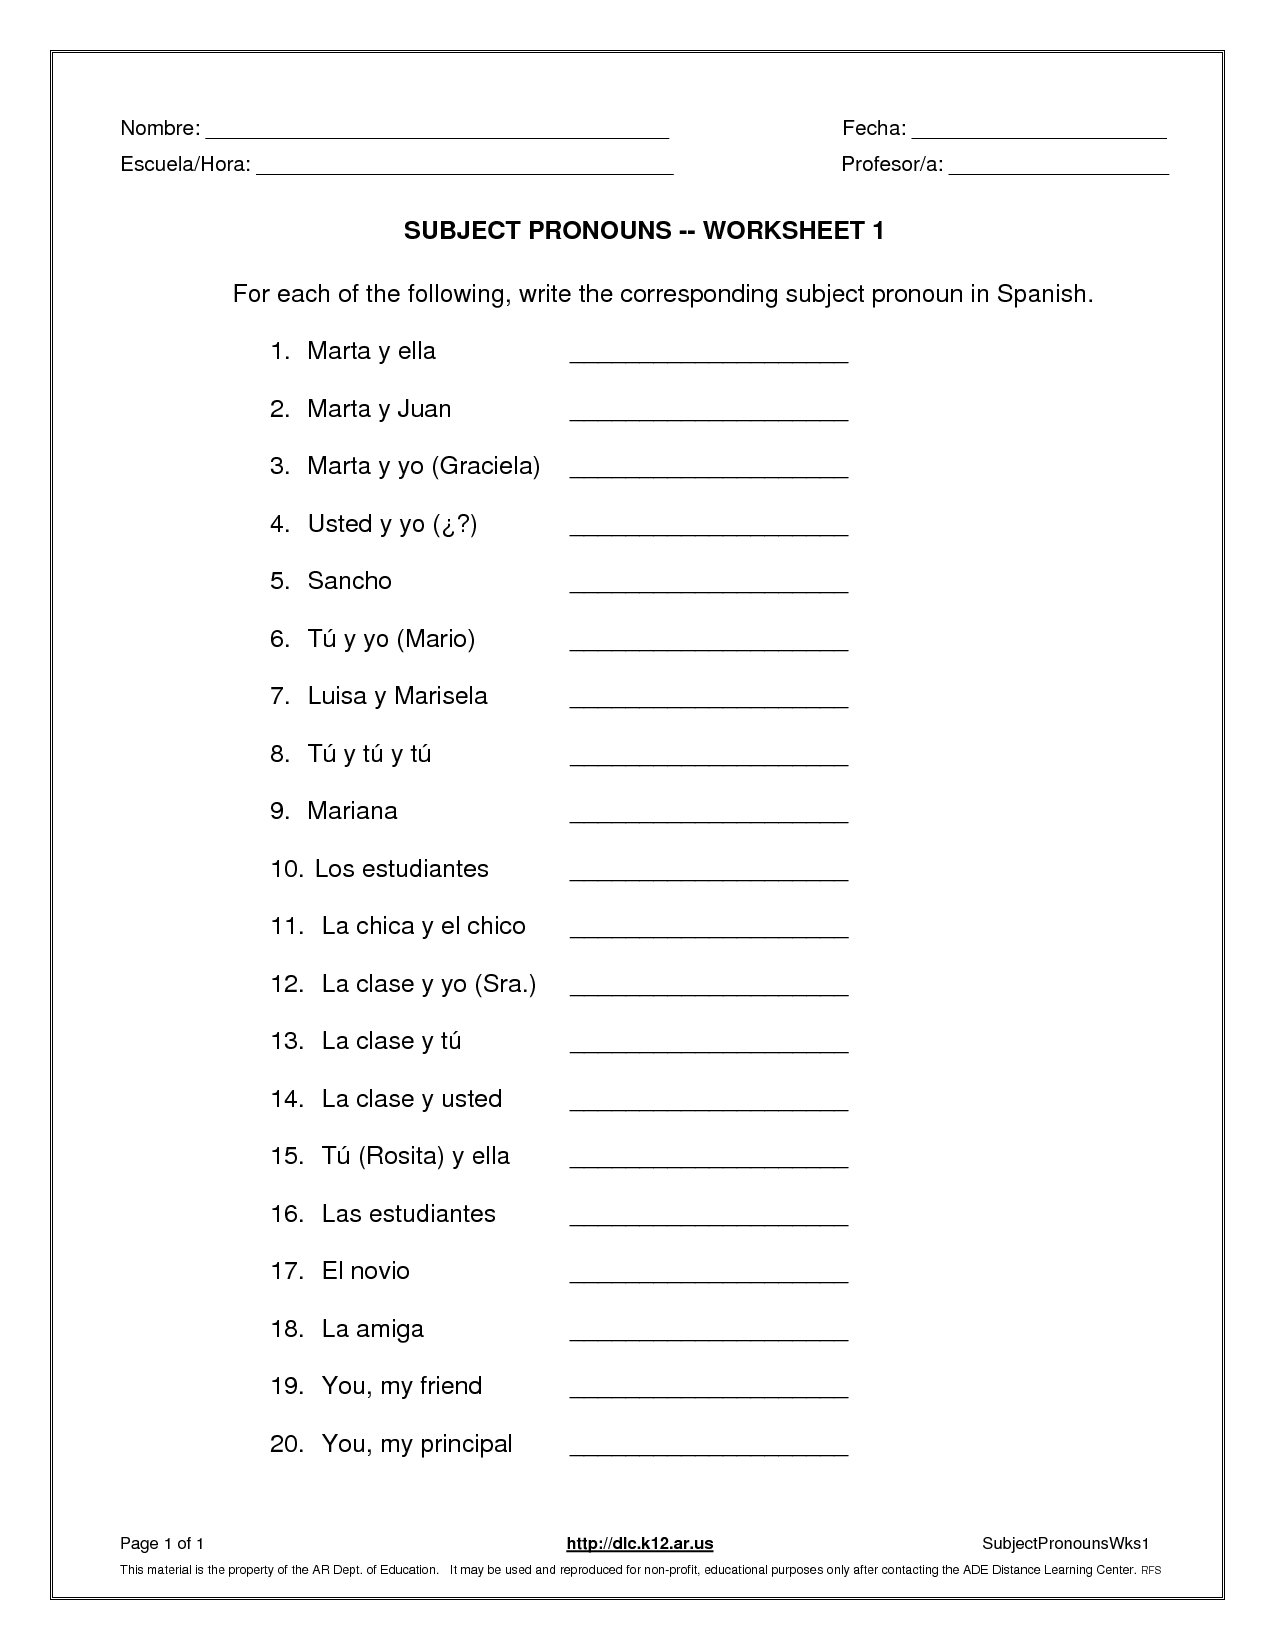 Subject Pronouns In Spanish Worksheet Answers